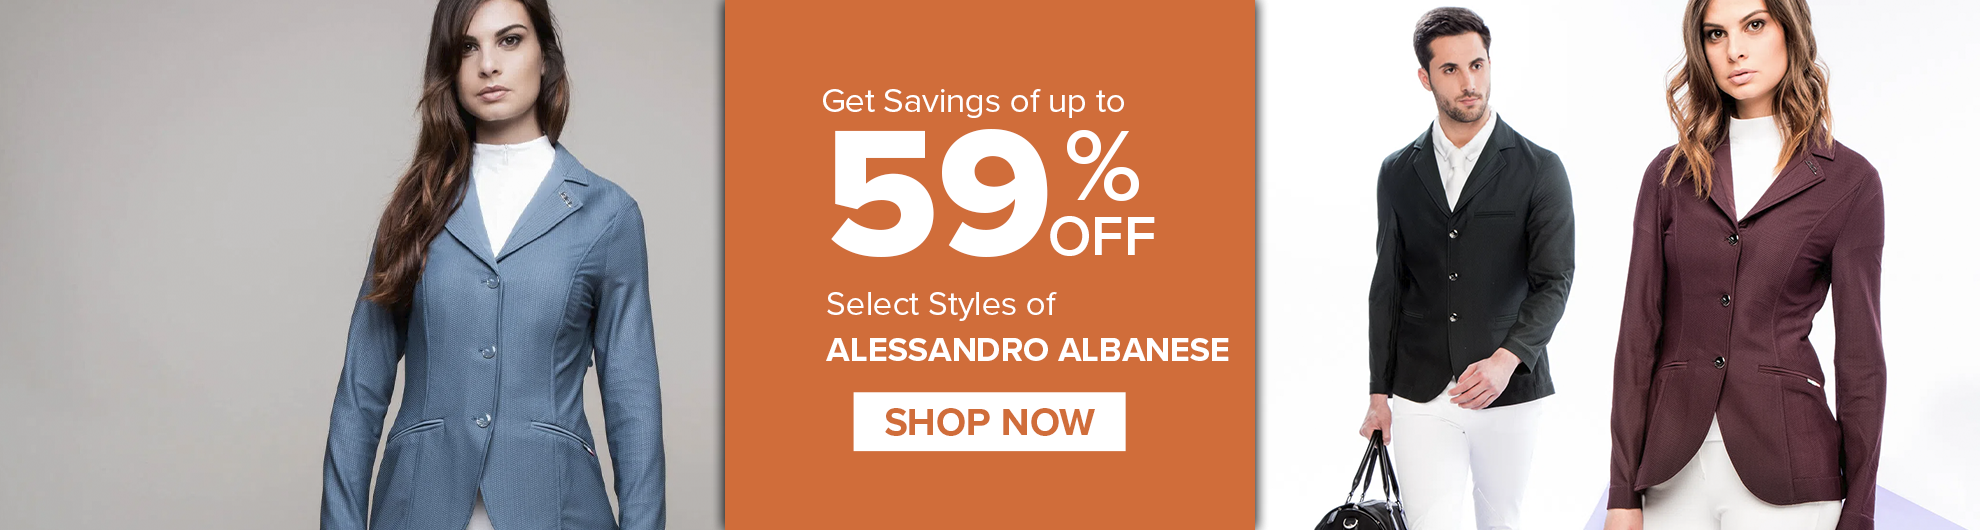 Alessandro Albanese on Sale